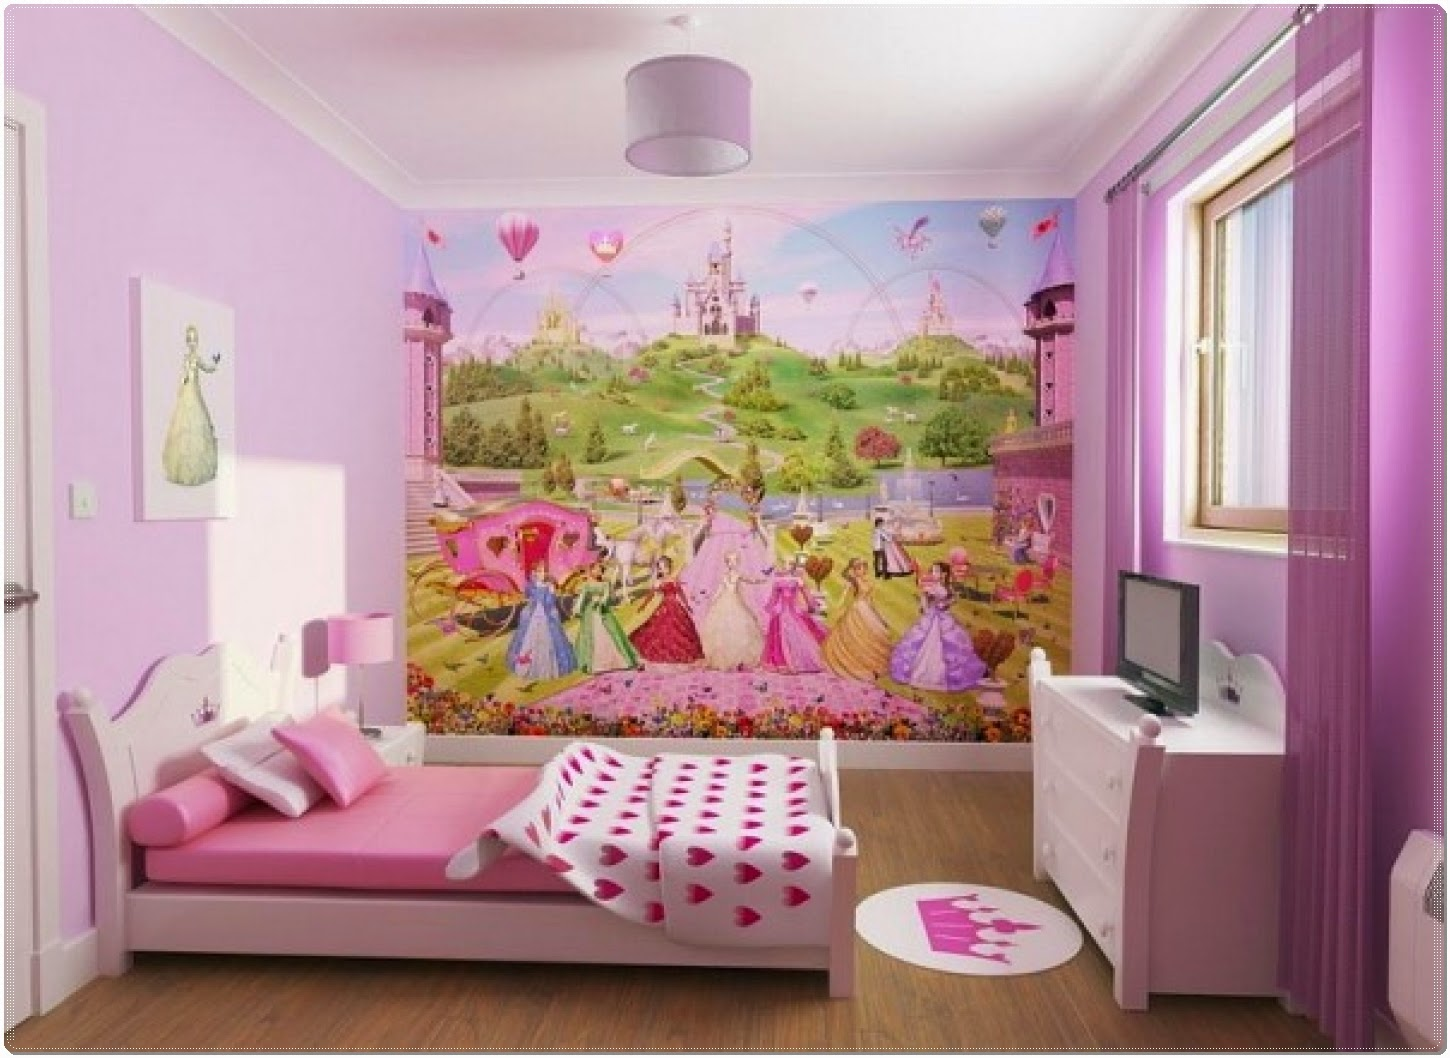 Kids Bedroom The Best Idea Of Little Girl Room With Princess Wallpaper Theme And Polka Dot Blanket Interior Design And Decorating Articles